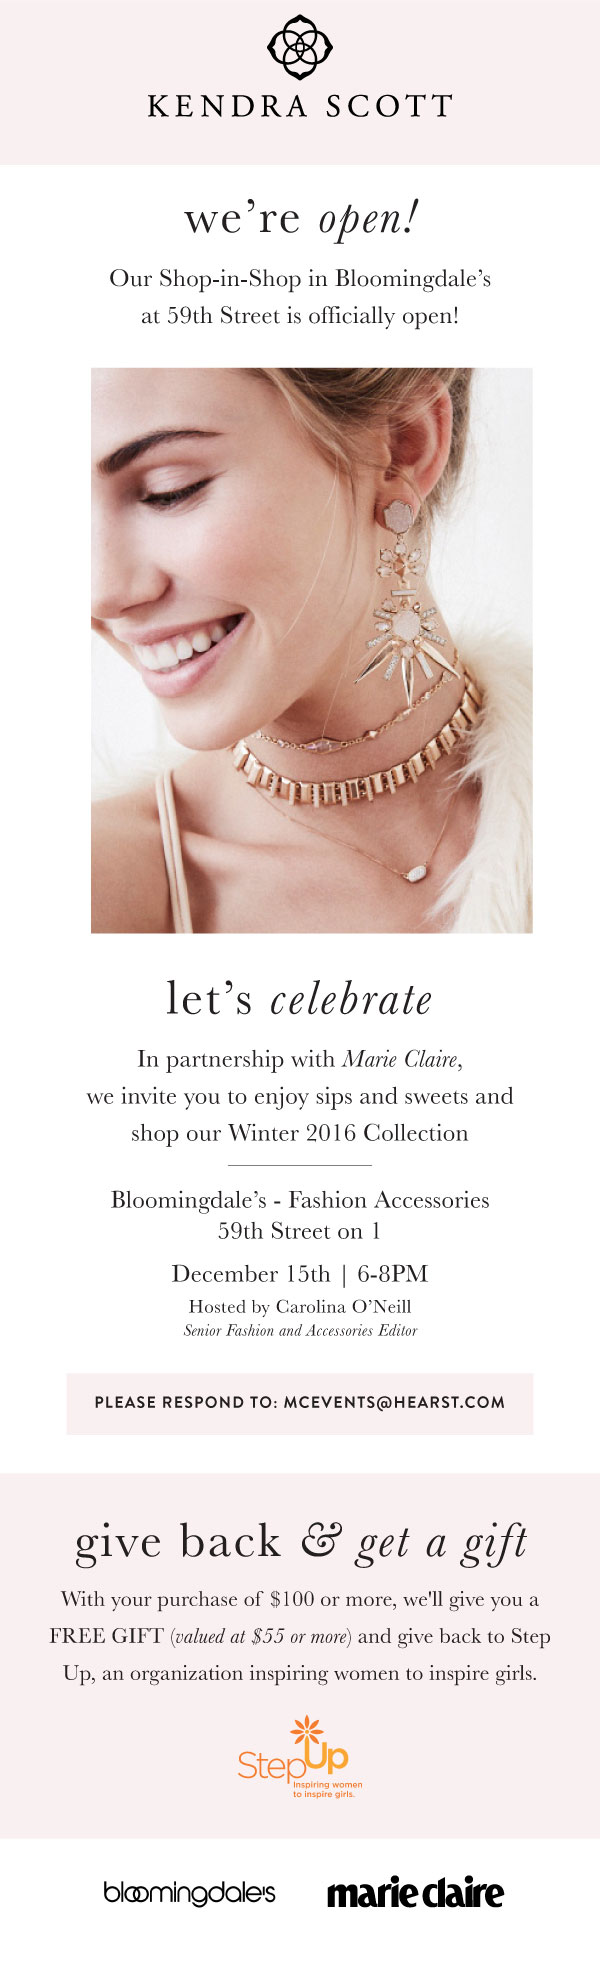 Step Up Salon: an evening with Kendra Scott at Bloomingdale's